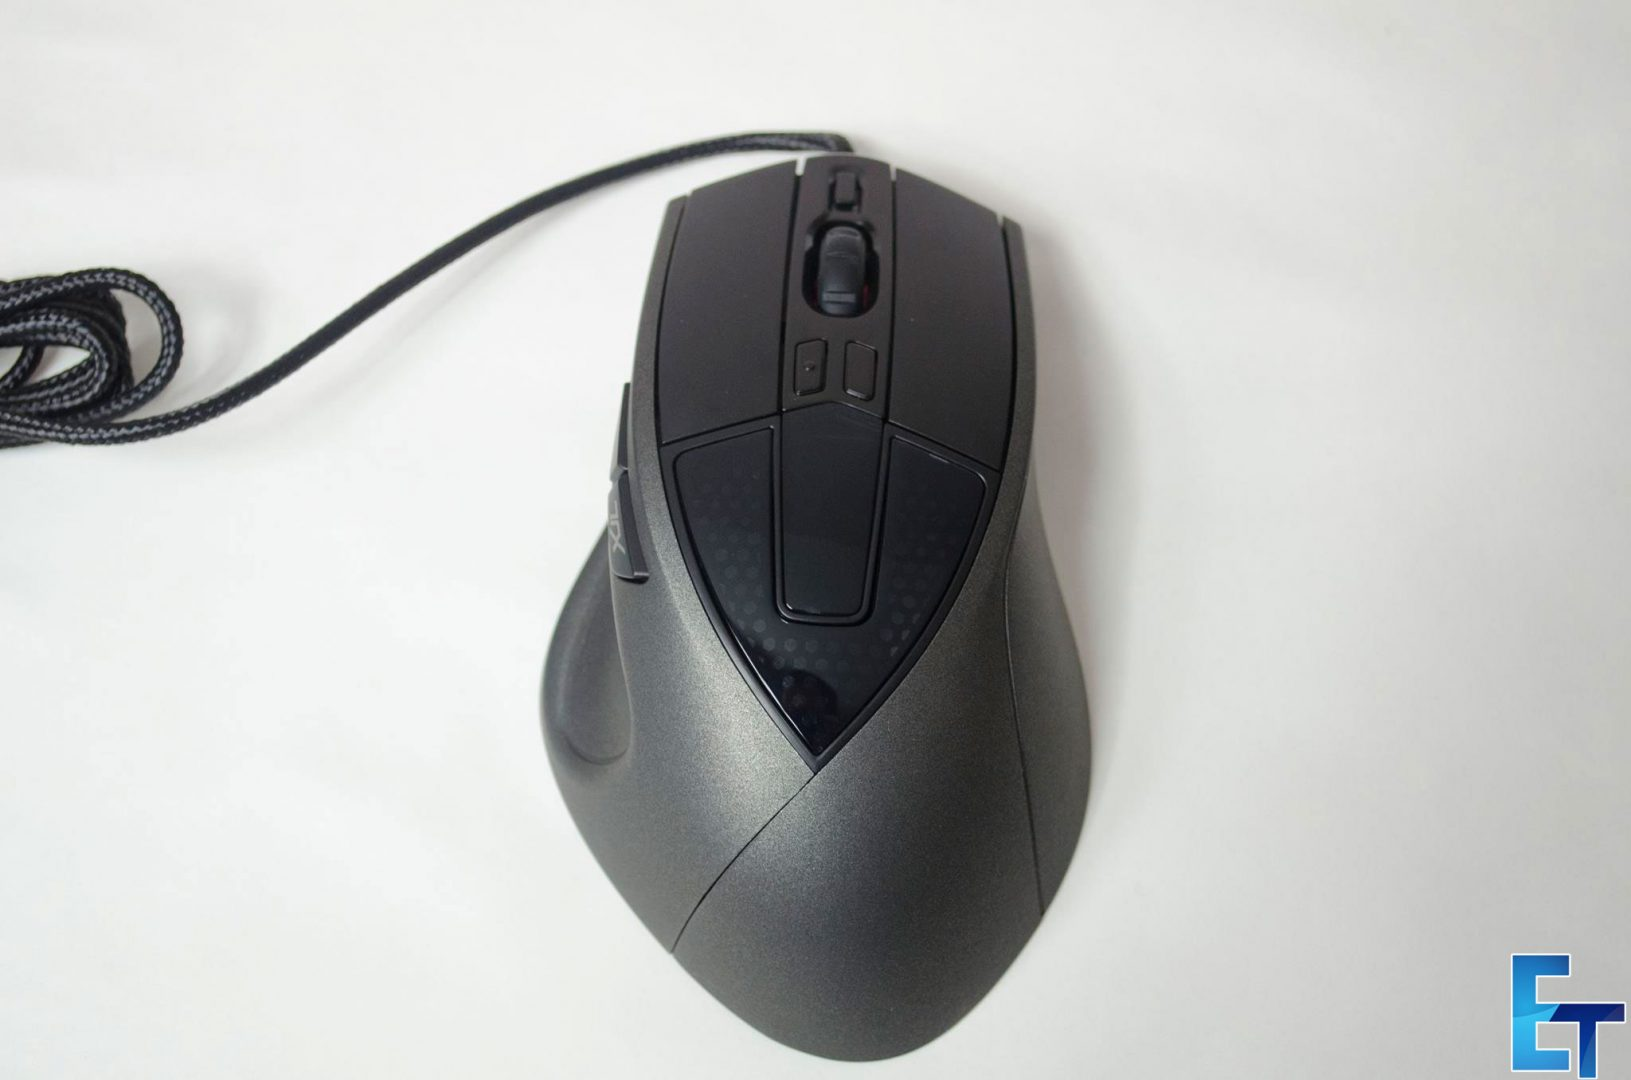 Cooler-Master-Sentinel-III-Ergonomic-Gaming-Mouse-Review_7